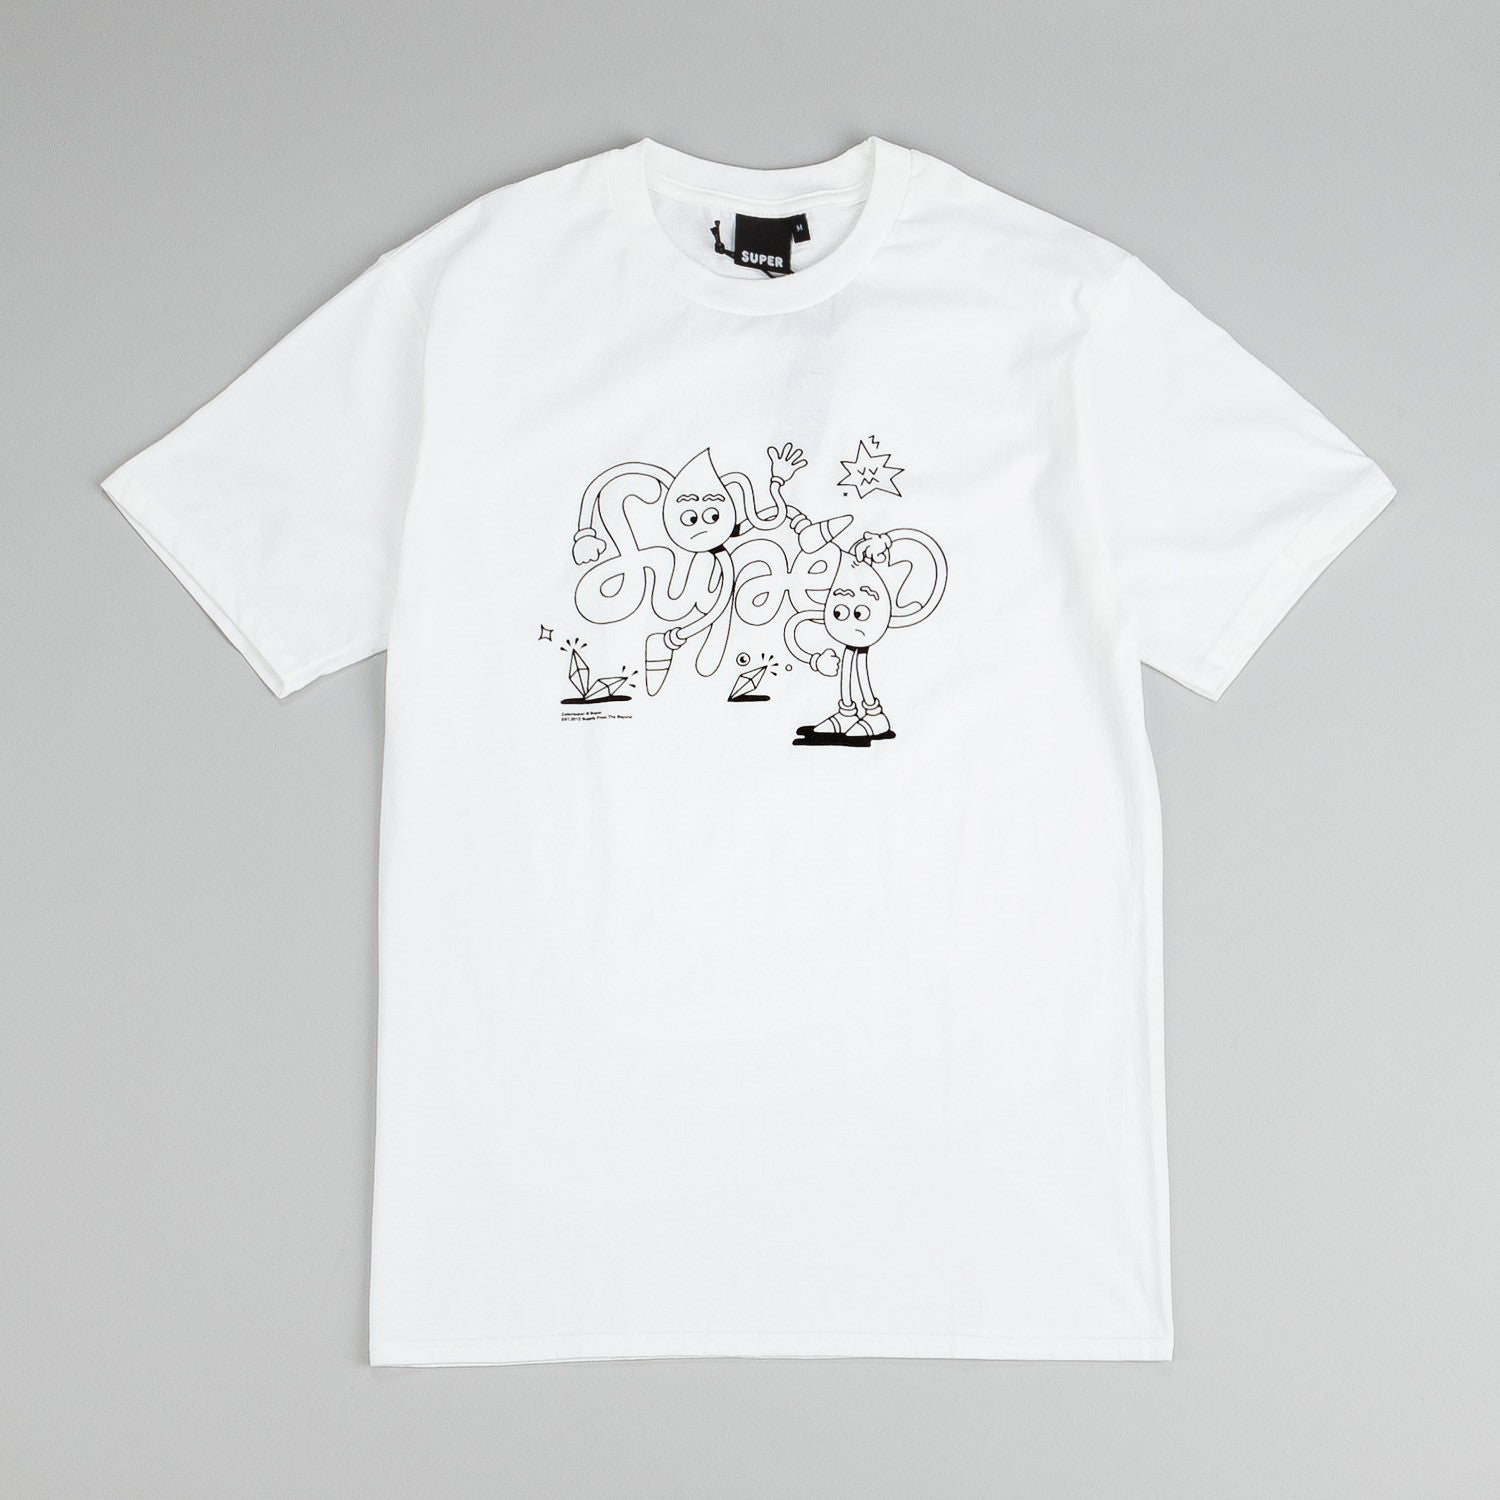 Colorsuper The Supers T-Shirt White / Black